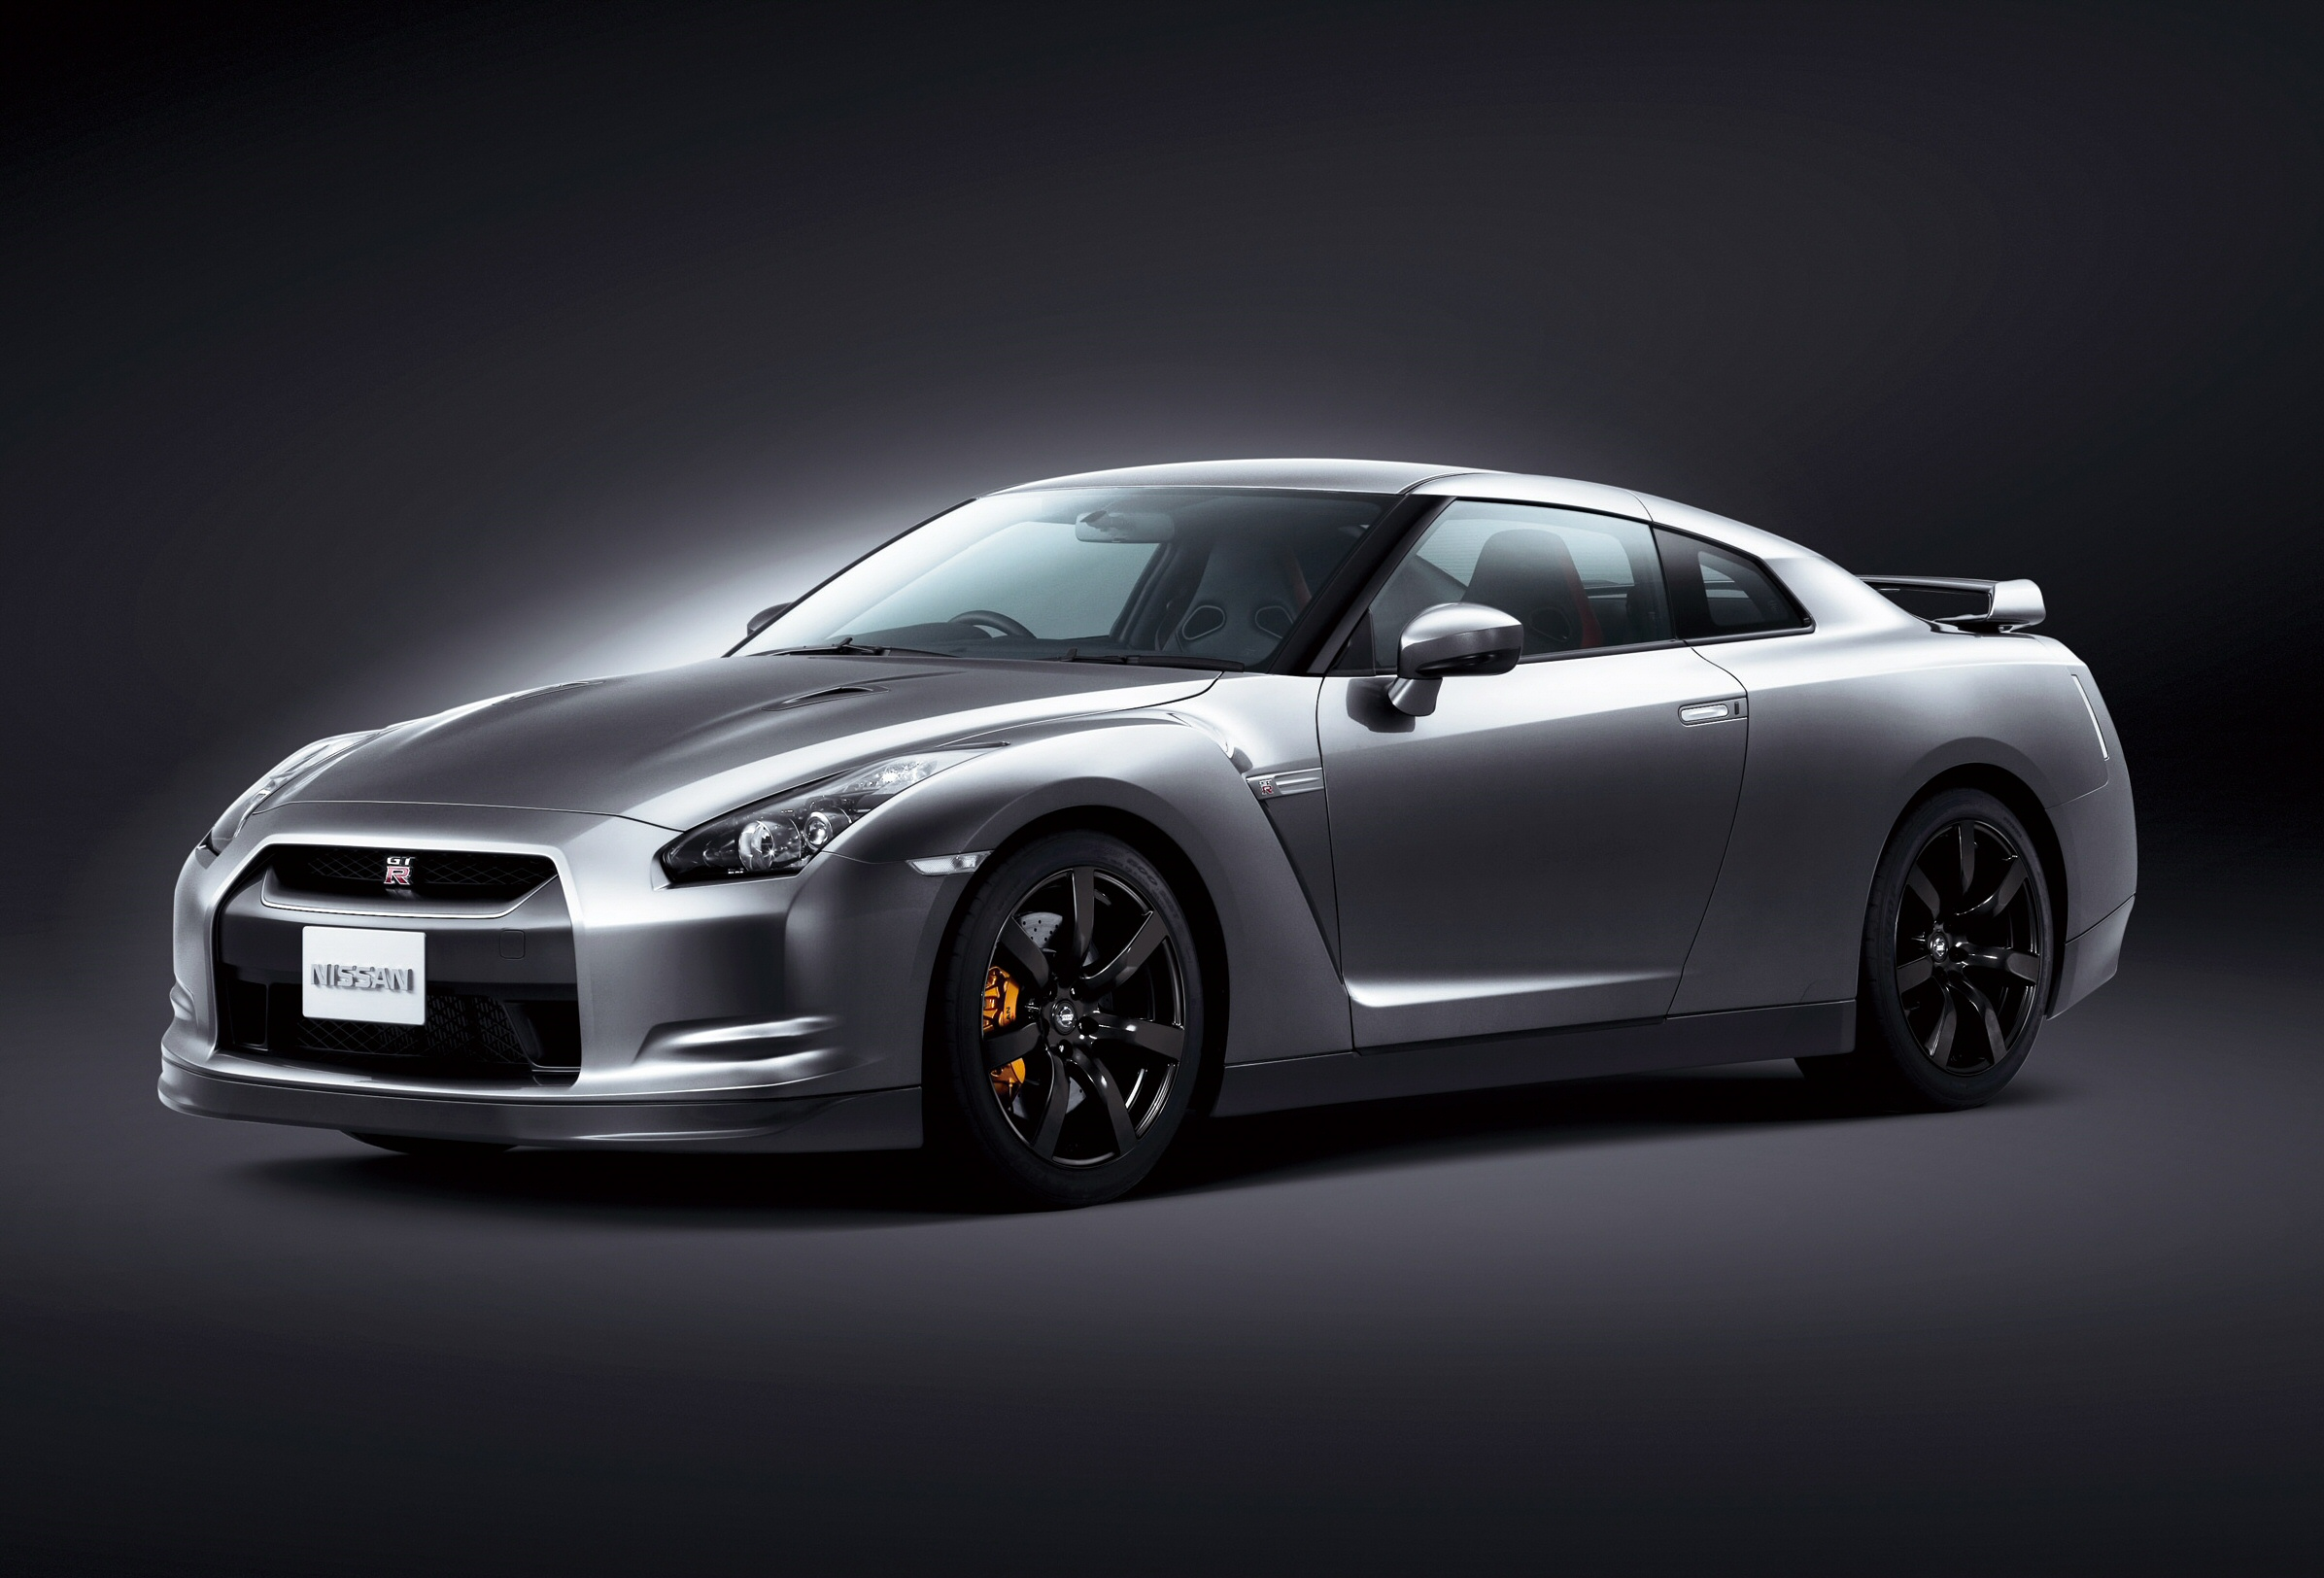 Vehicles - Nissan GT-R  - Gt - Nissan - Gt-r Wallpaper